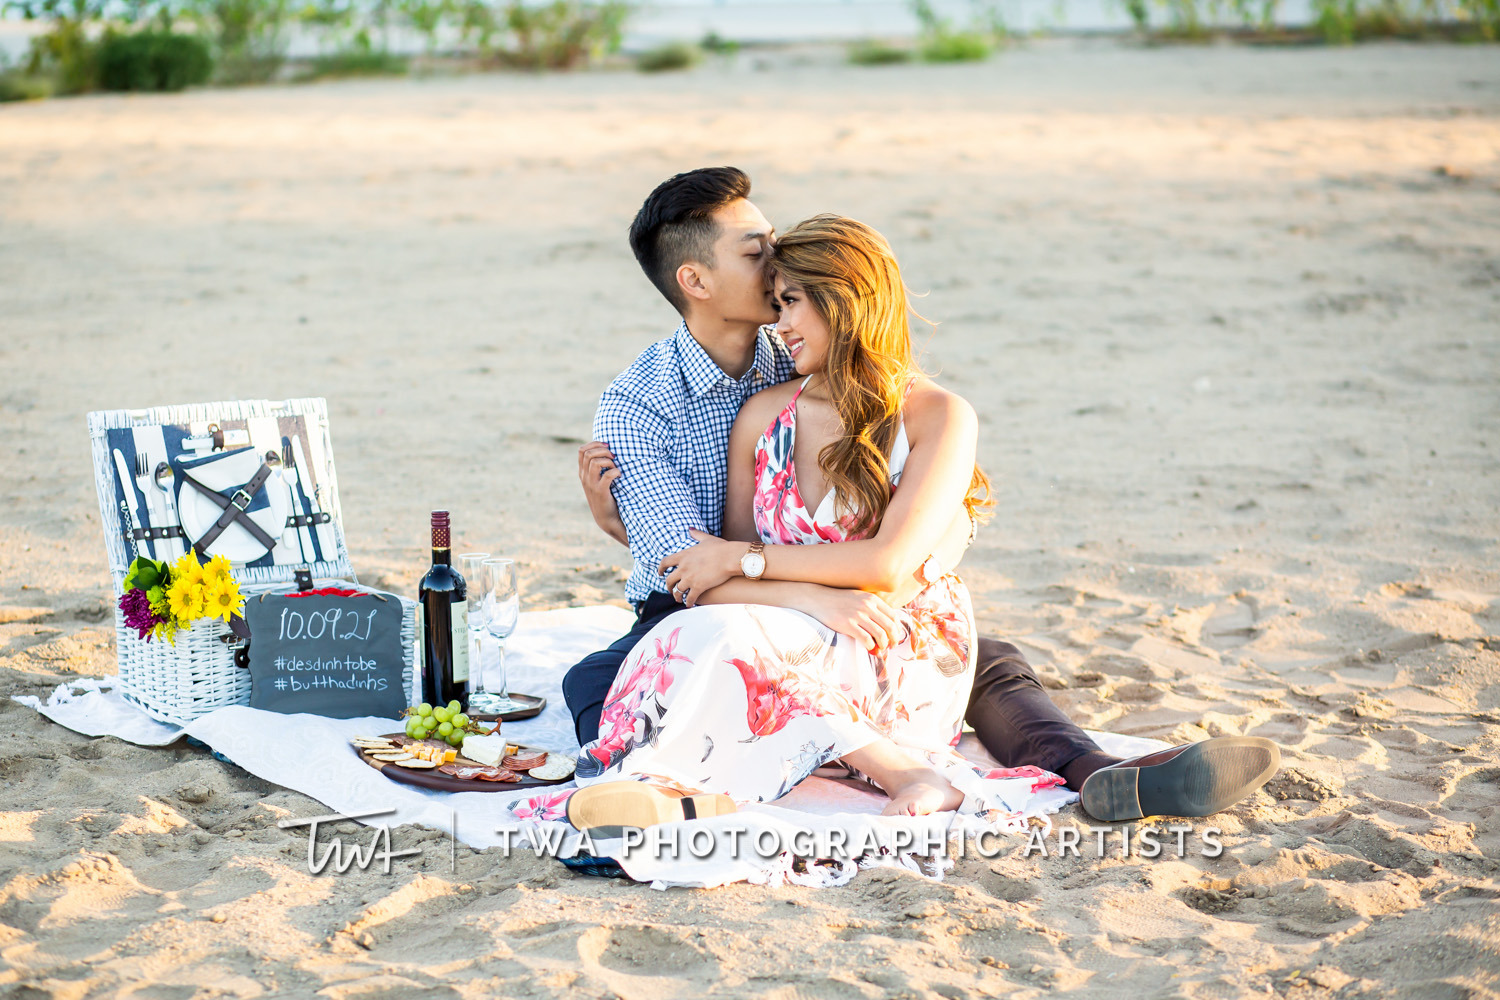 Chicago-Wedding-Photographer-TWA-Photographic-Artists-North-Ave-Beach_Butthajit_Dinh_MJ-072